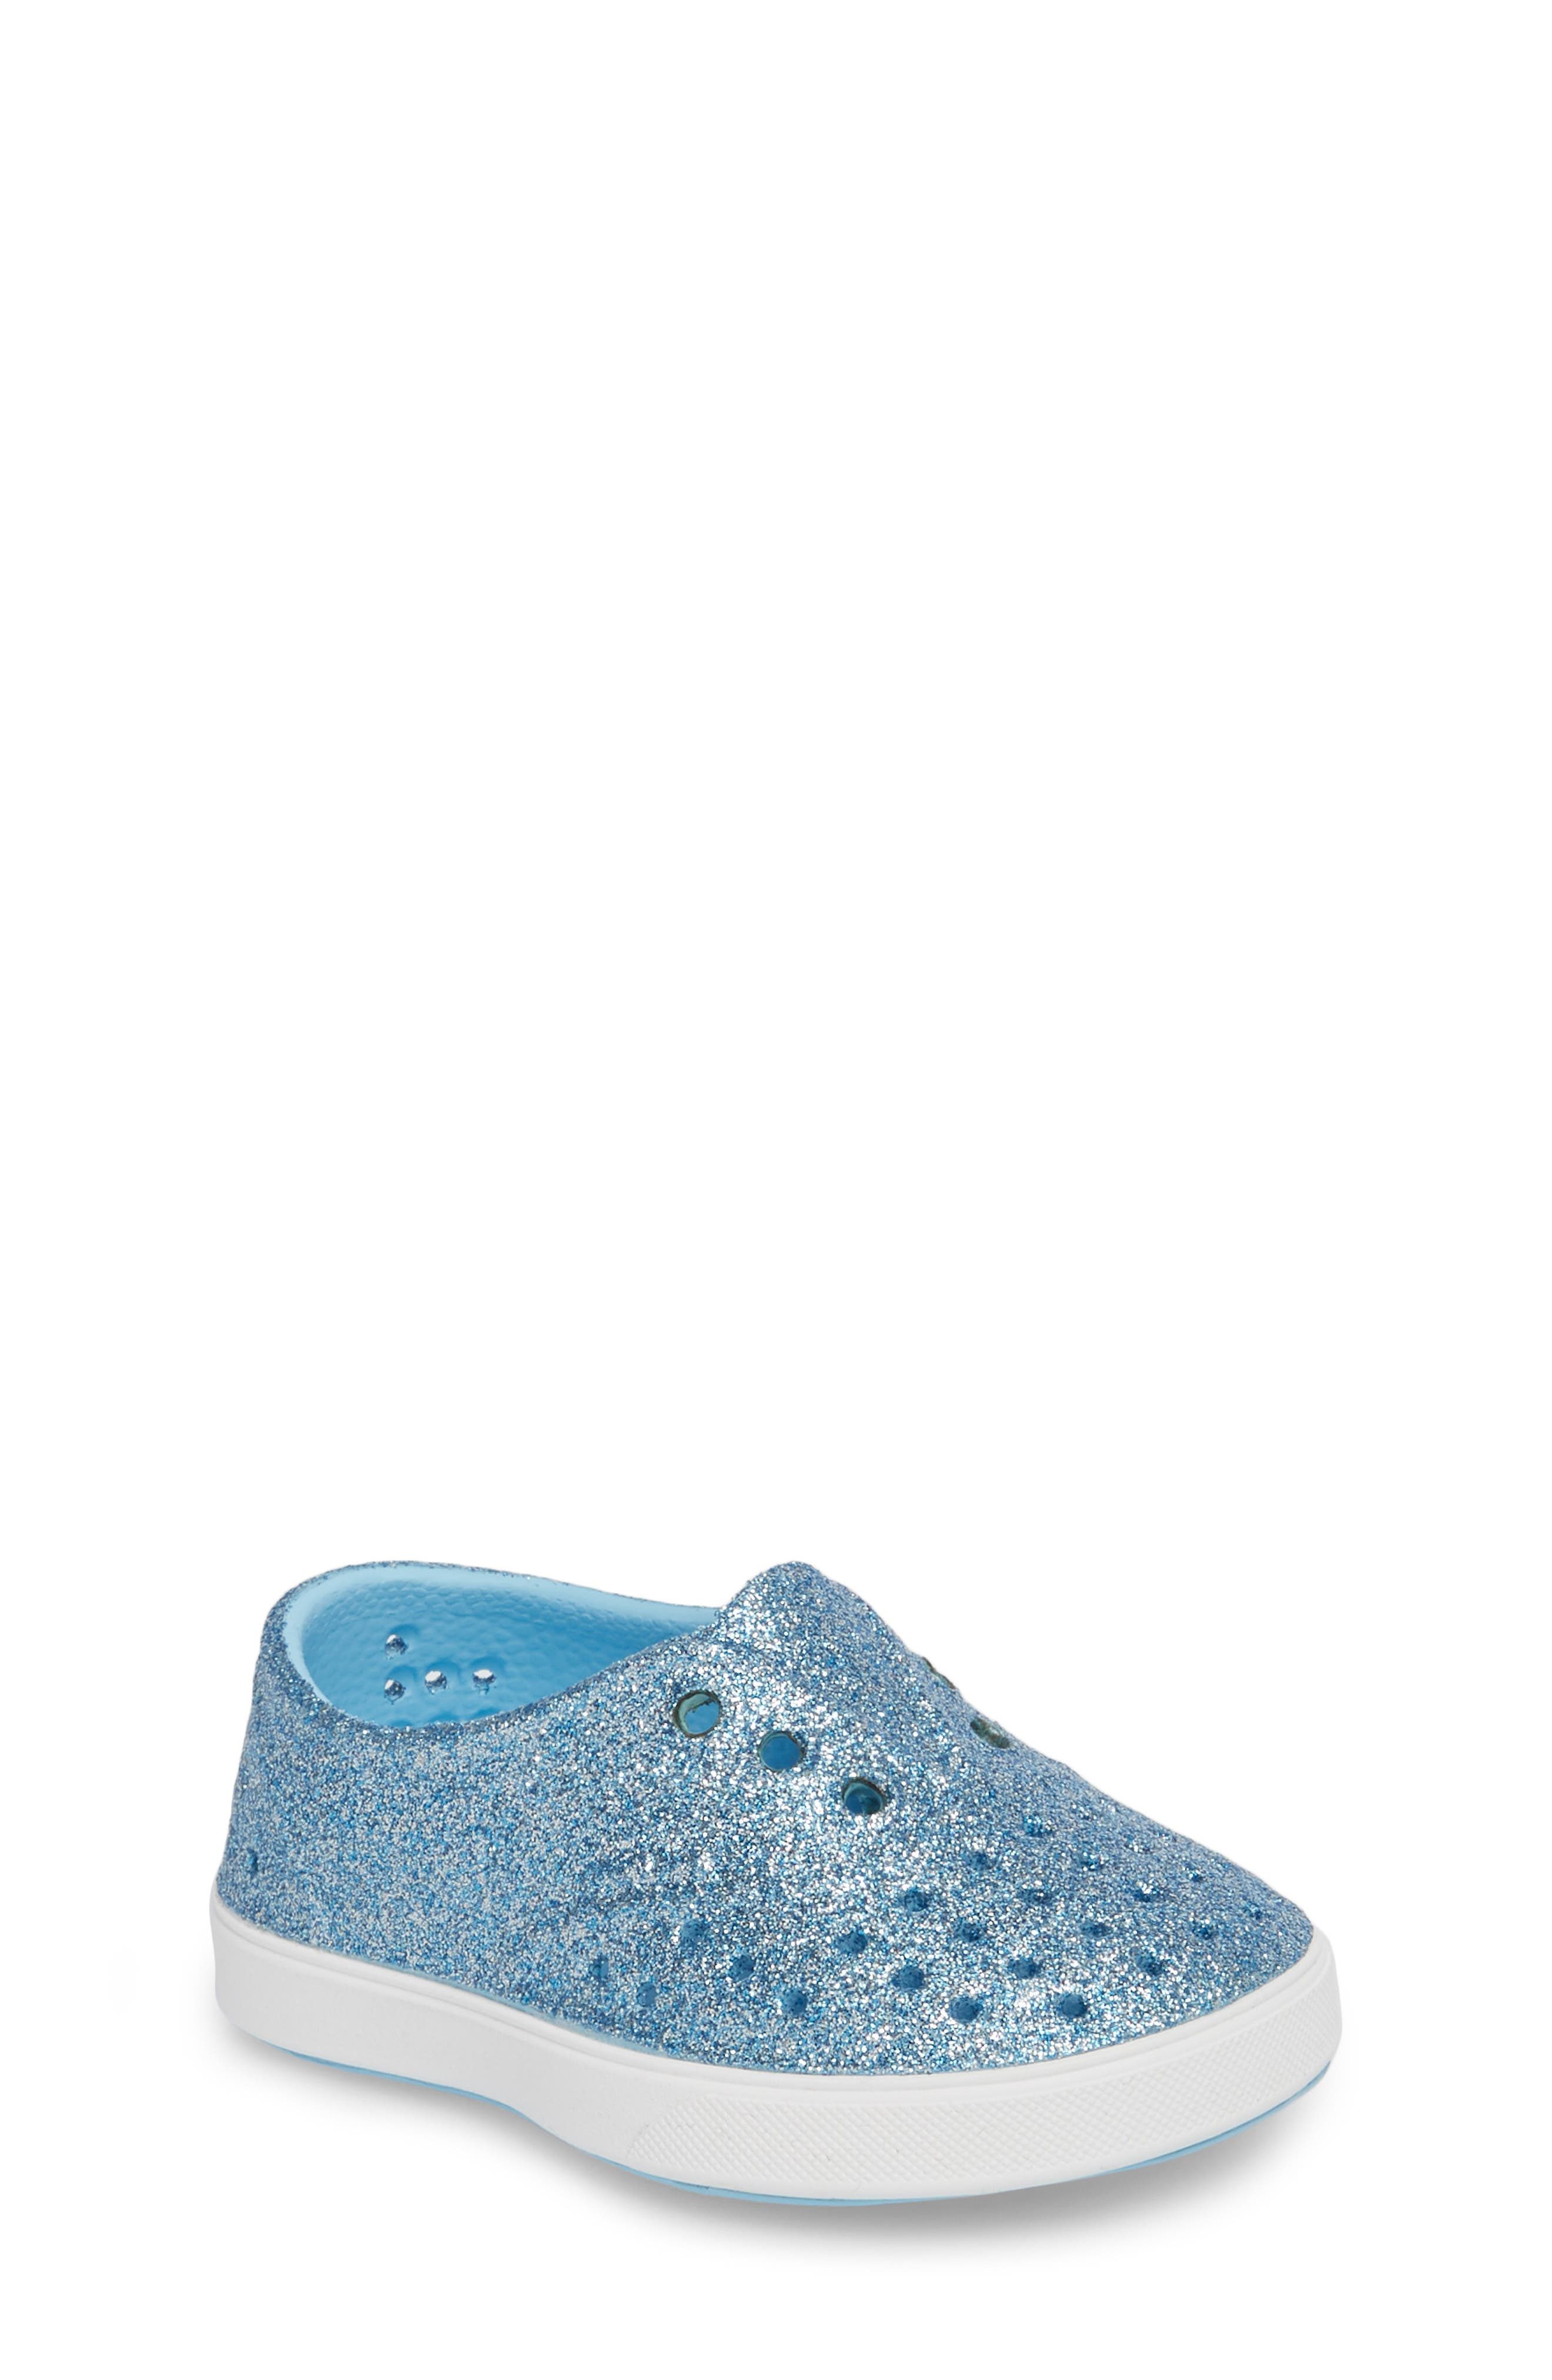 Miller Sparkly Perforated Slip-On,                         Main,                         color, 484